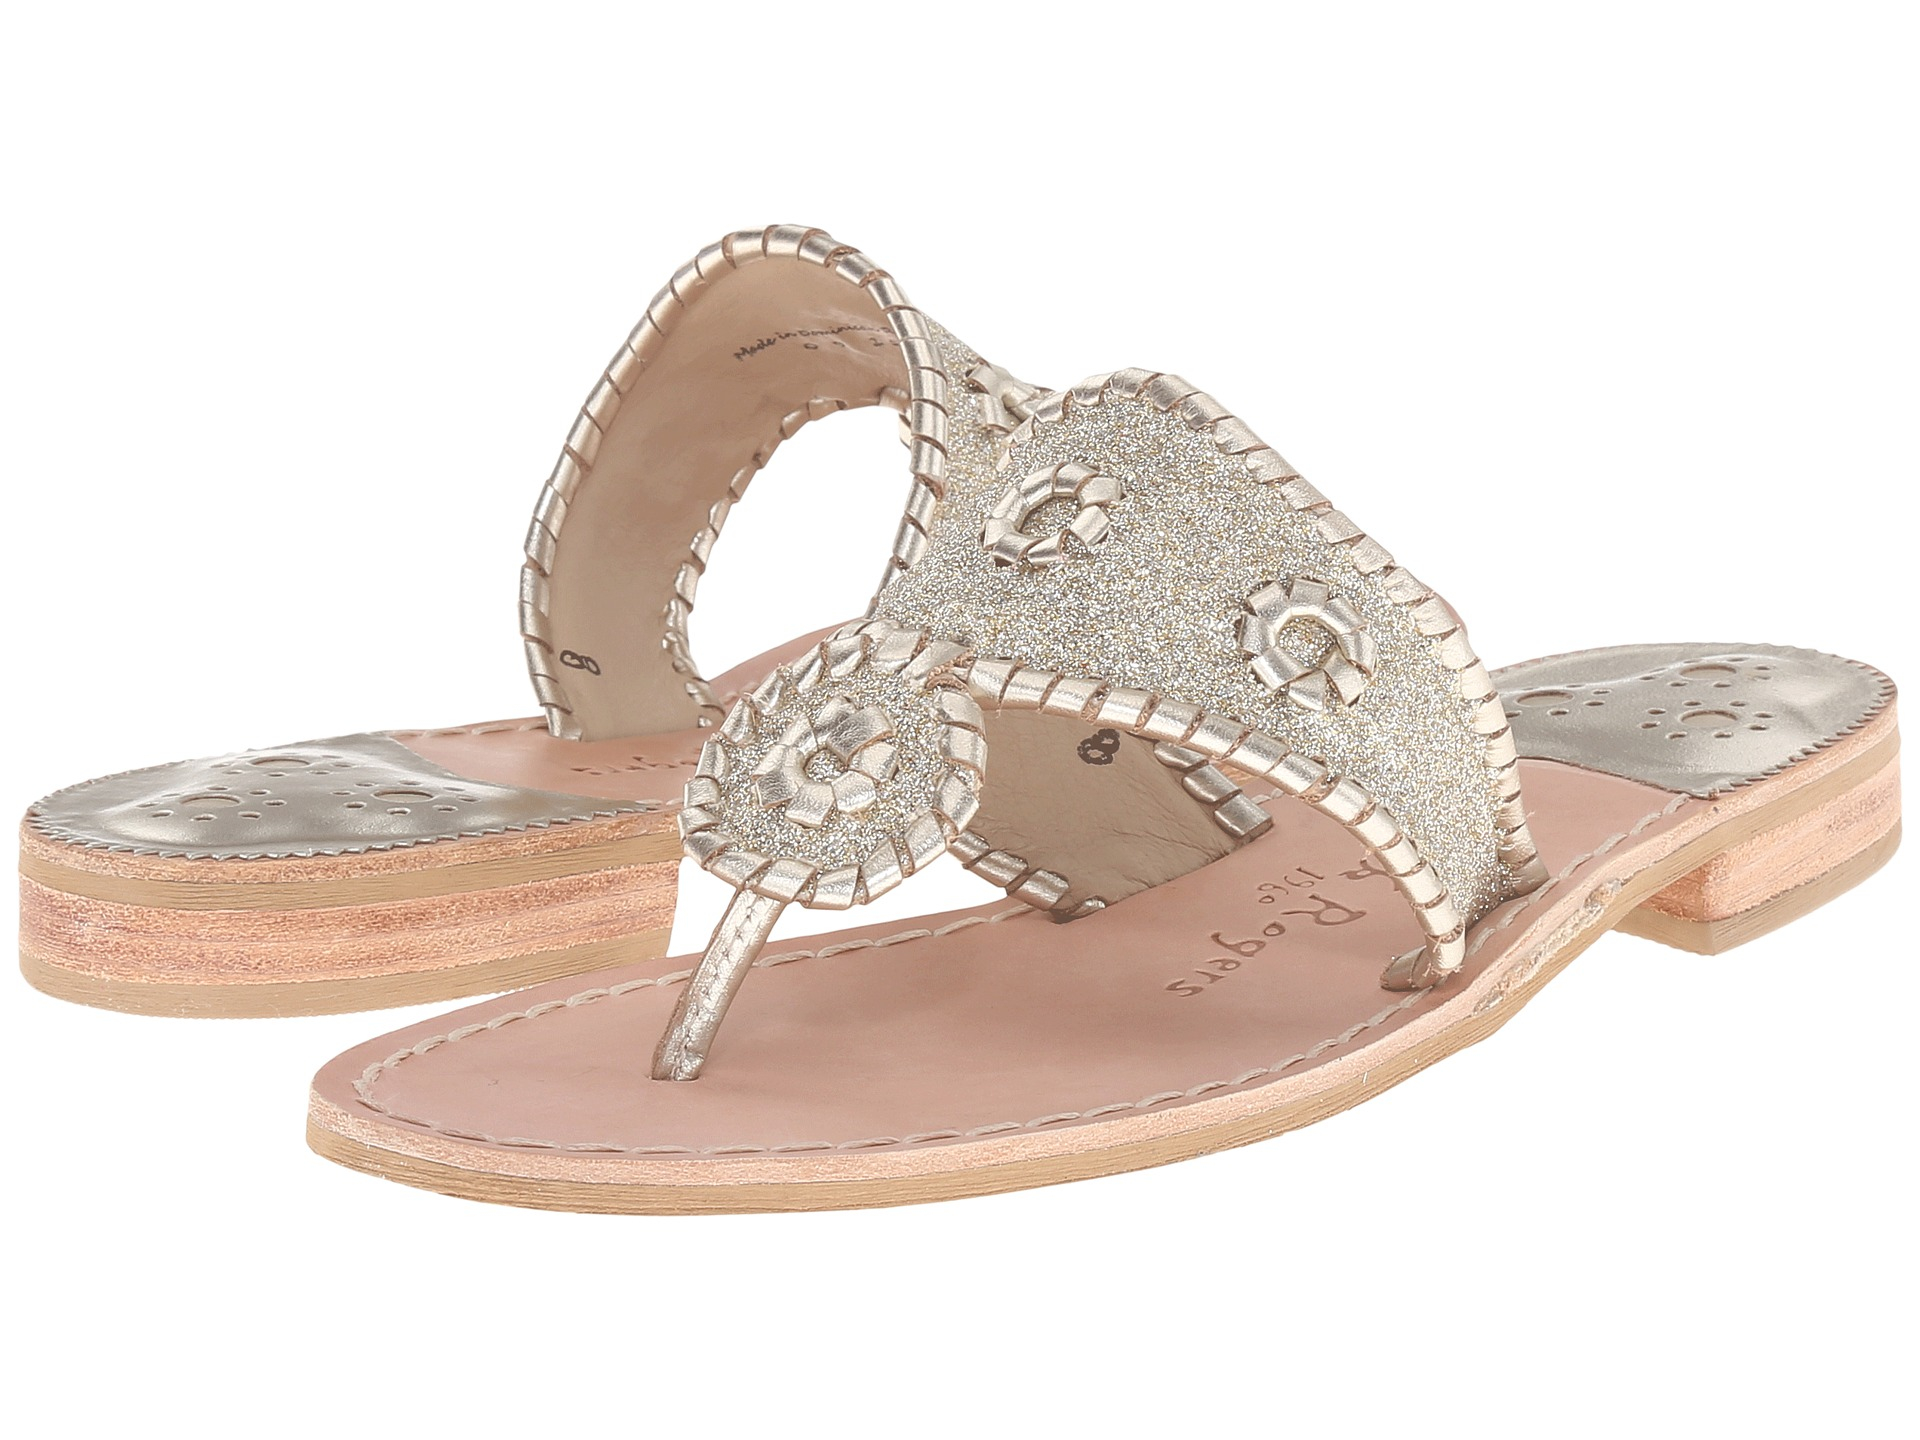 Jack rogers Sparkle in Natural | Lyst: https://www.lyst.com/shoes/jack-rogers-sparkle-platinum/